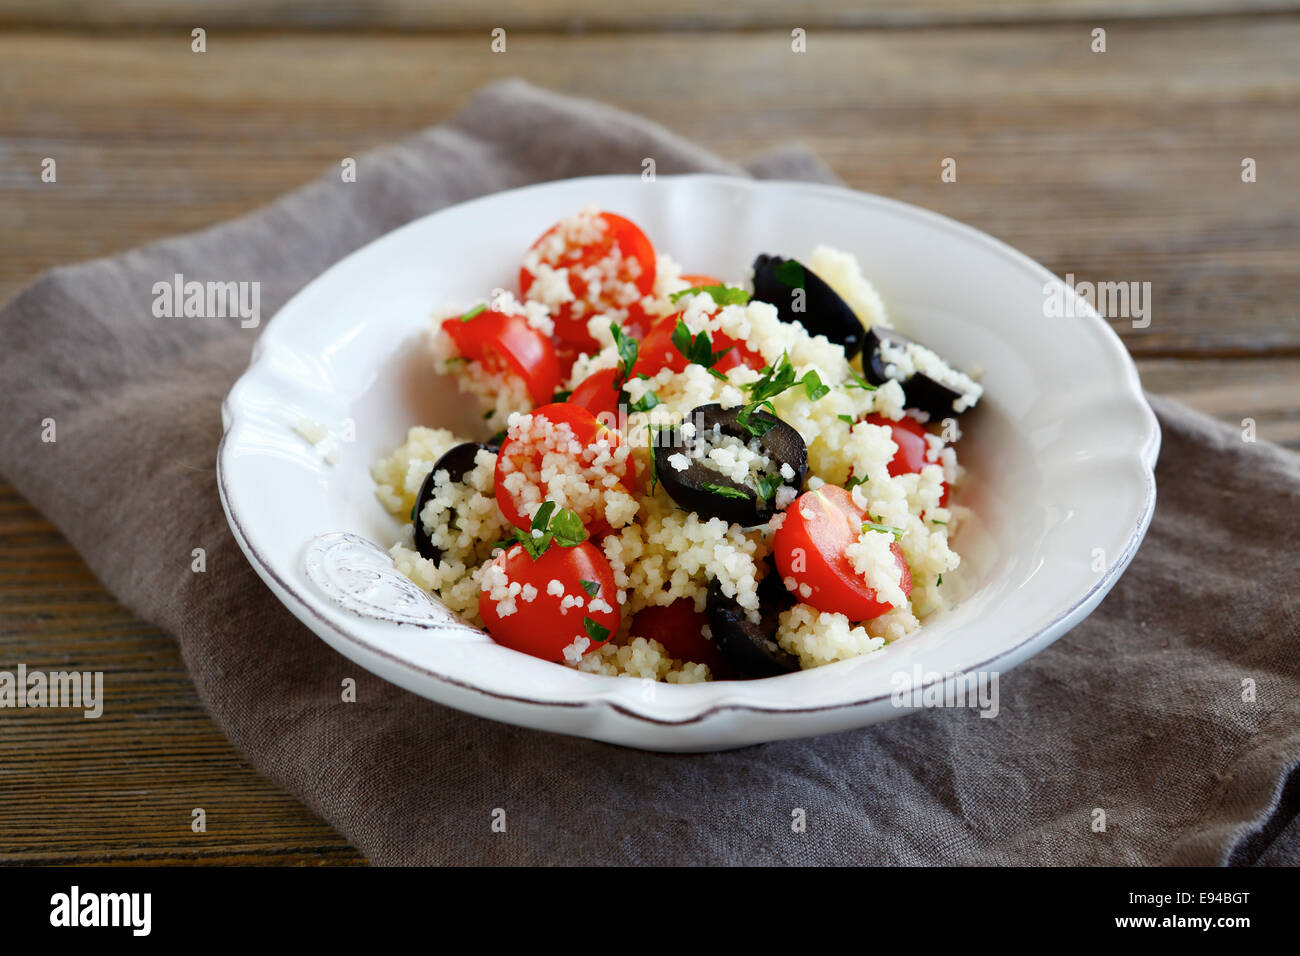 Light salad with couscous and vegetables, food - Stock Image